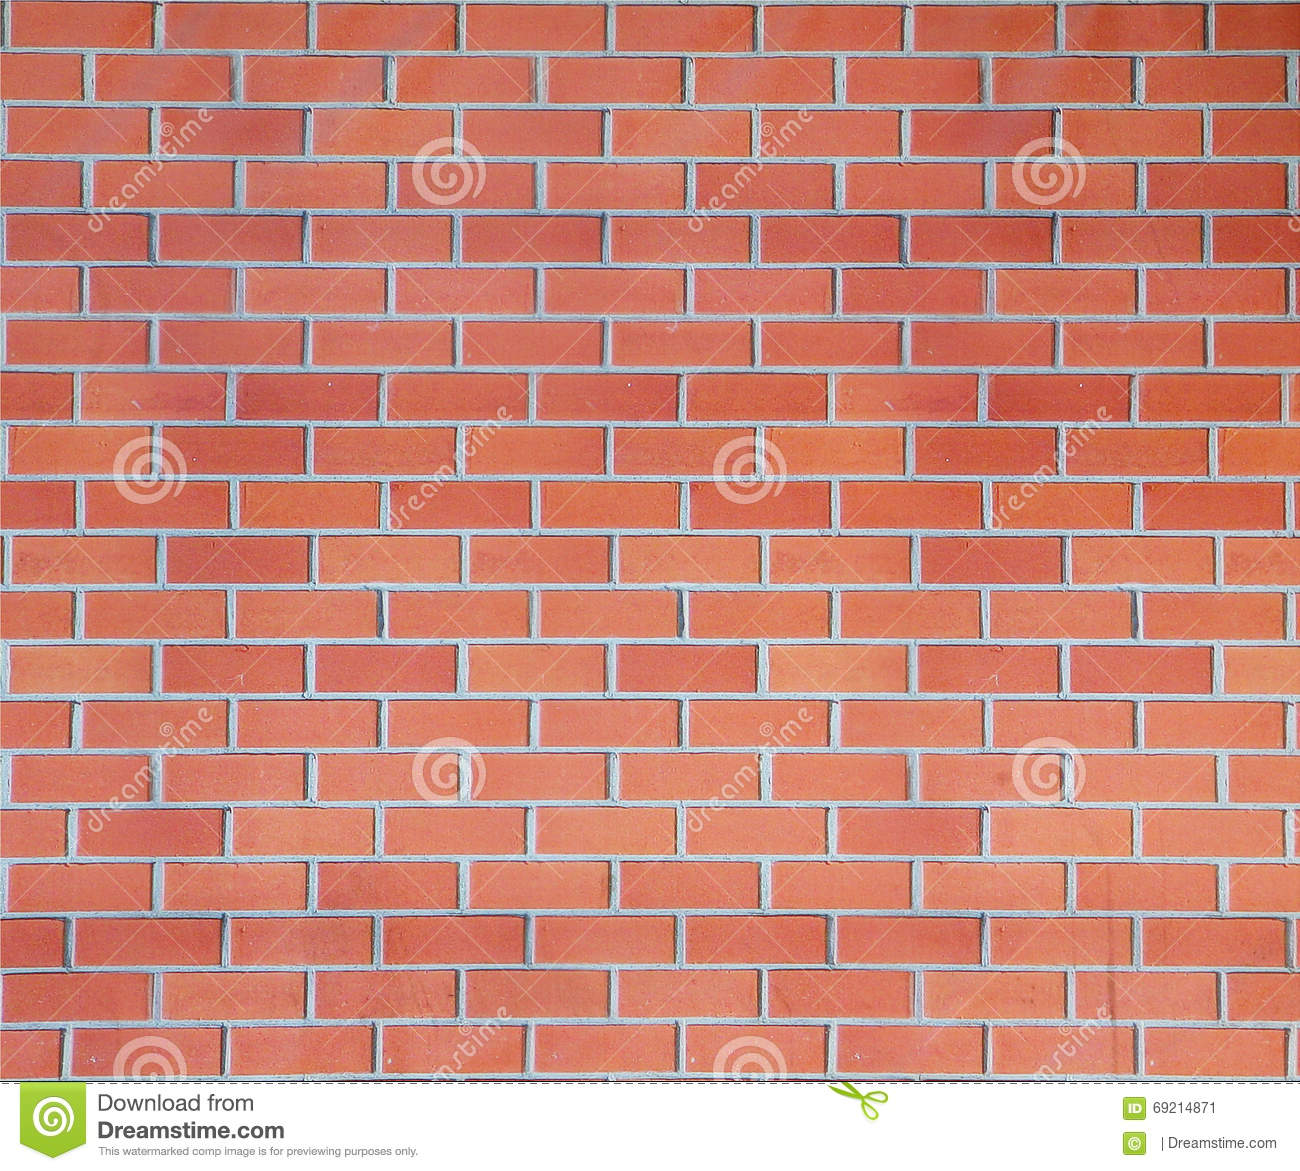 Brick wall stock image. Image of exterior, color, house - 69214871